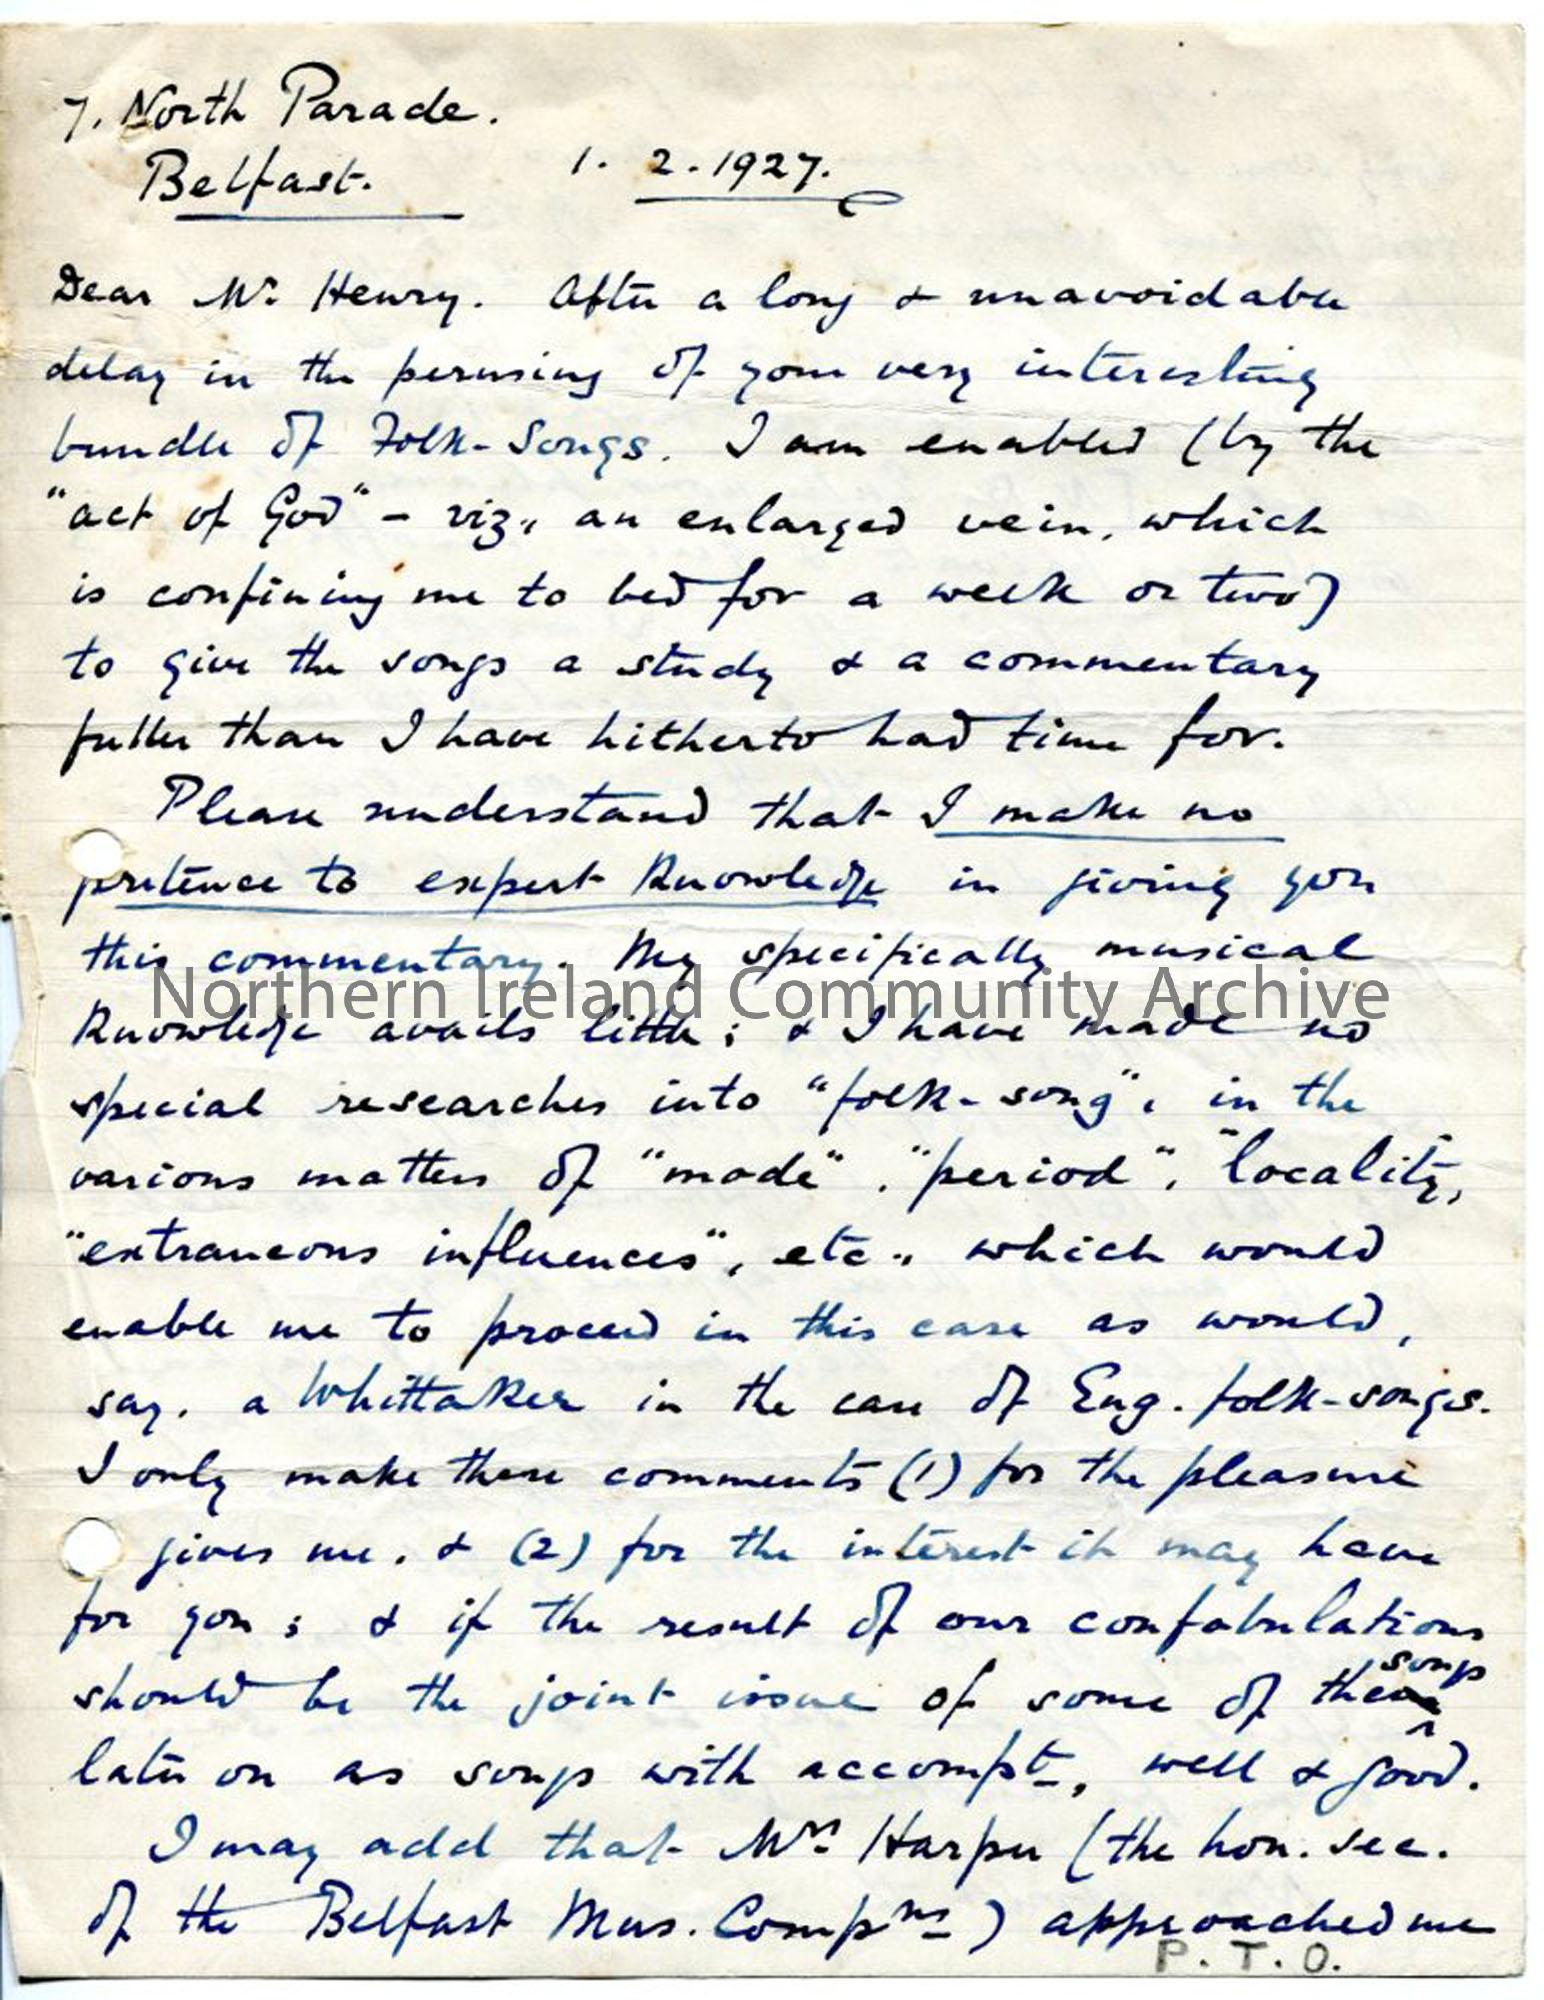 Page 1 of 12, letter from Norman Hay, 1.2.1927